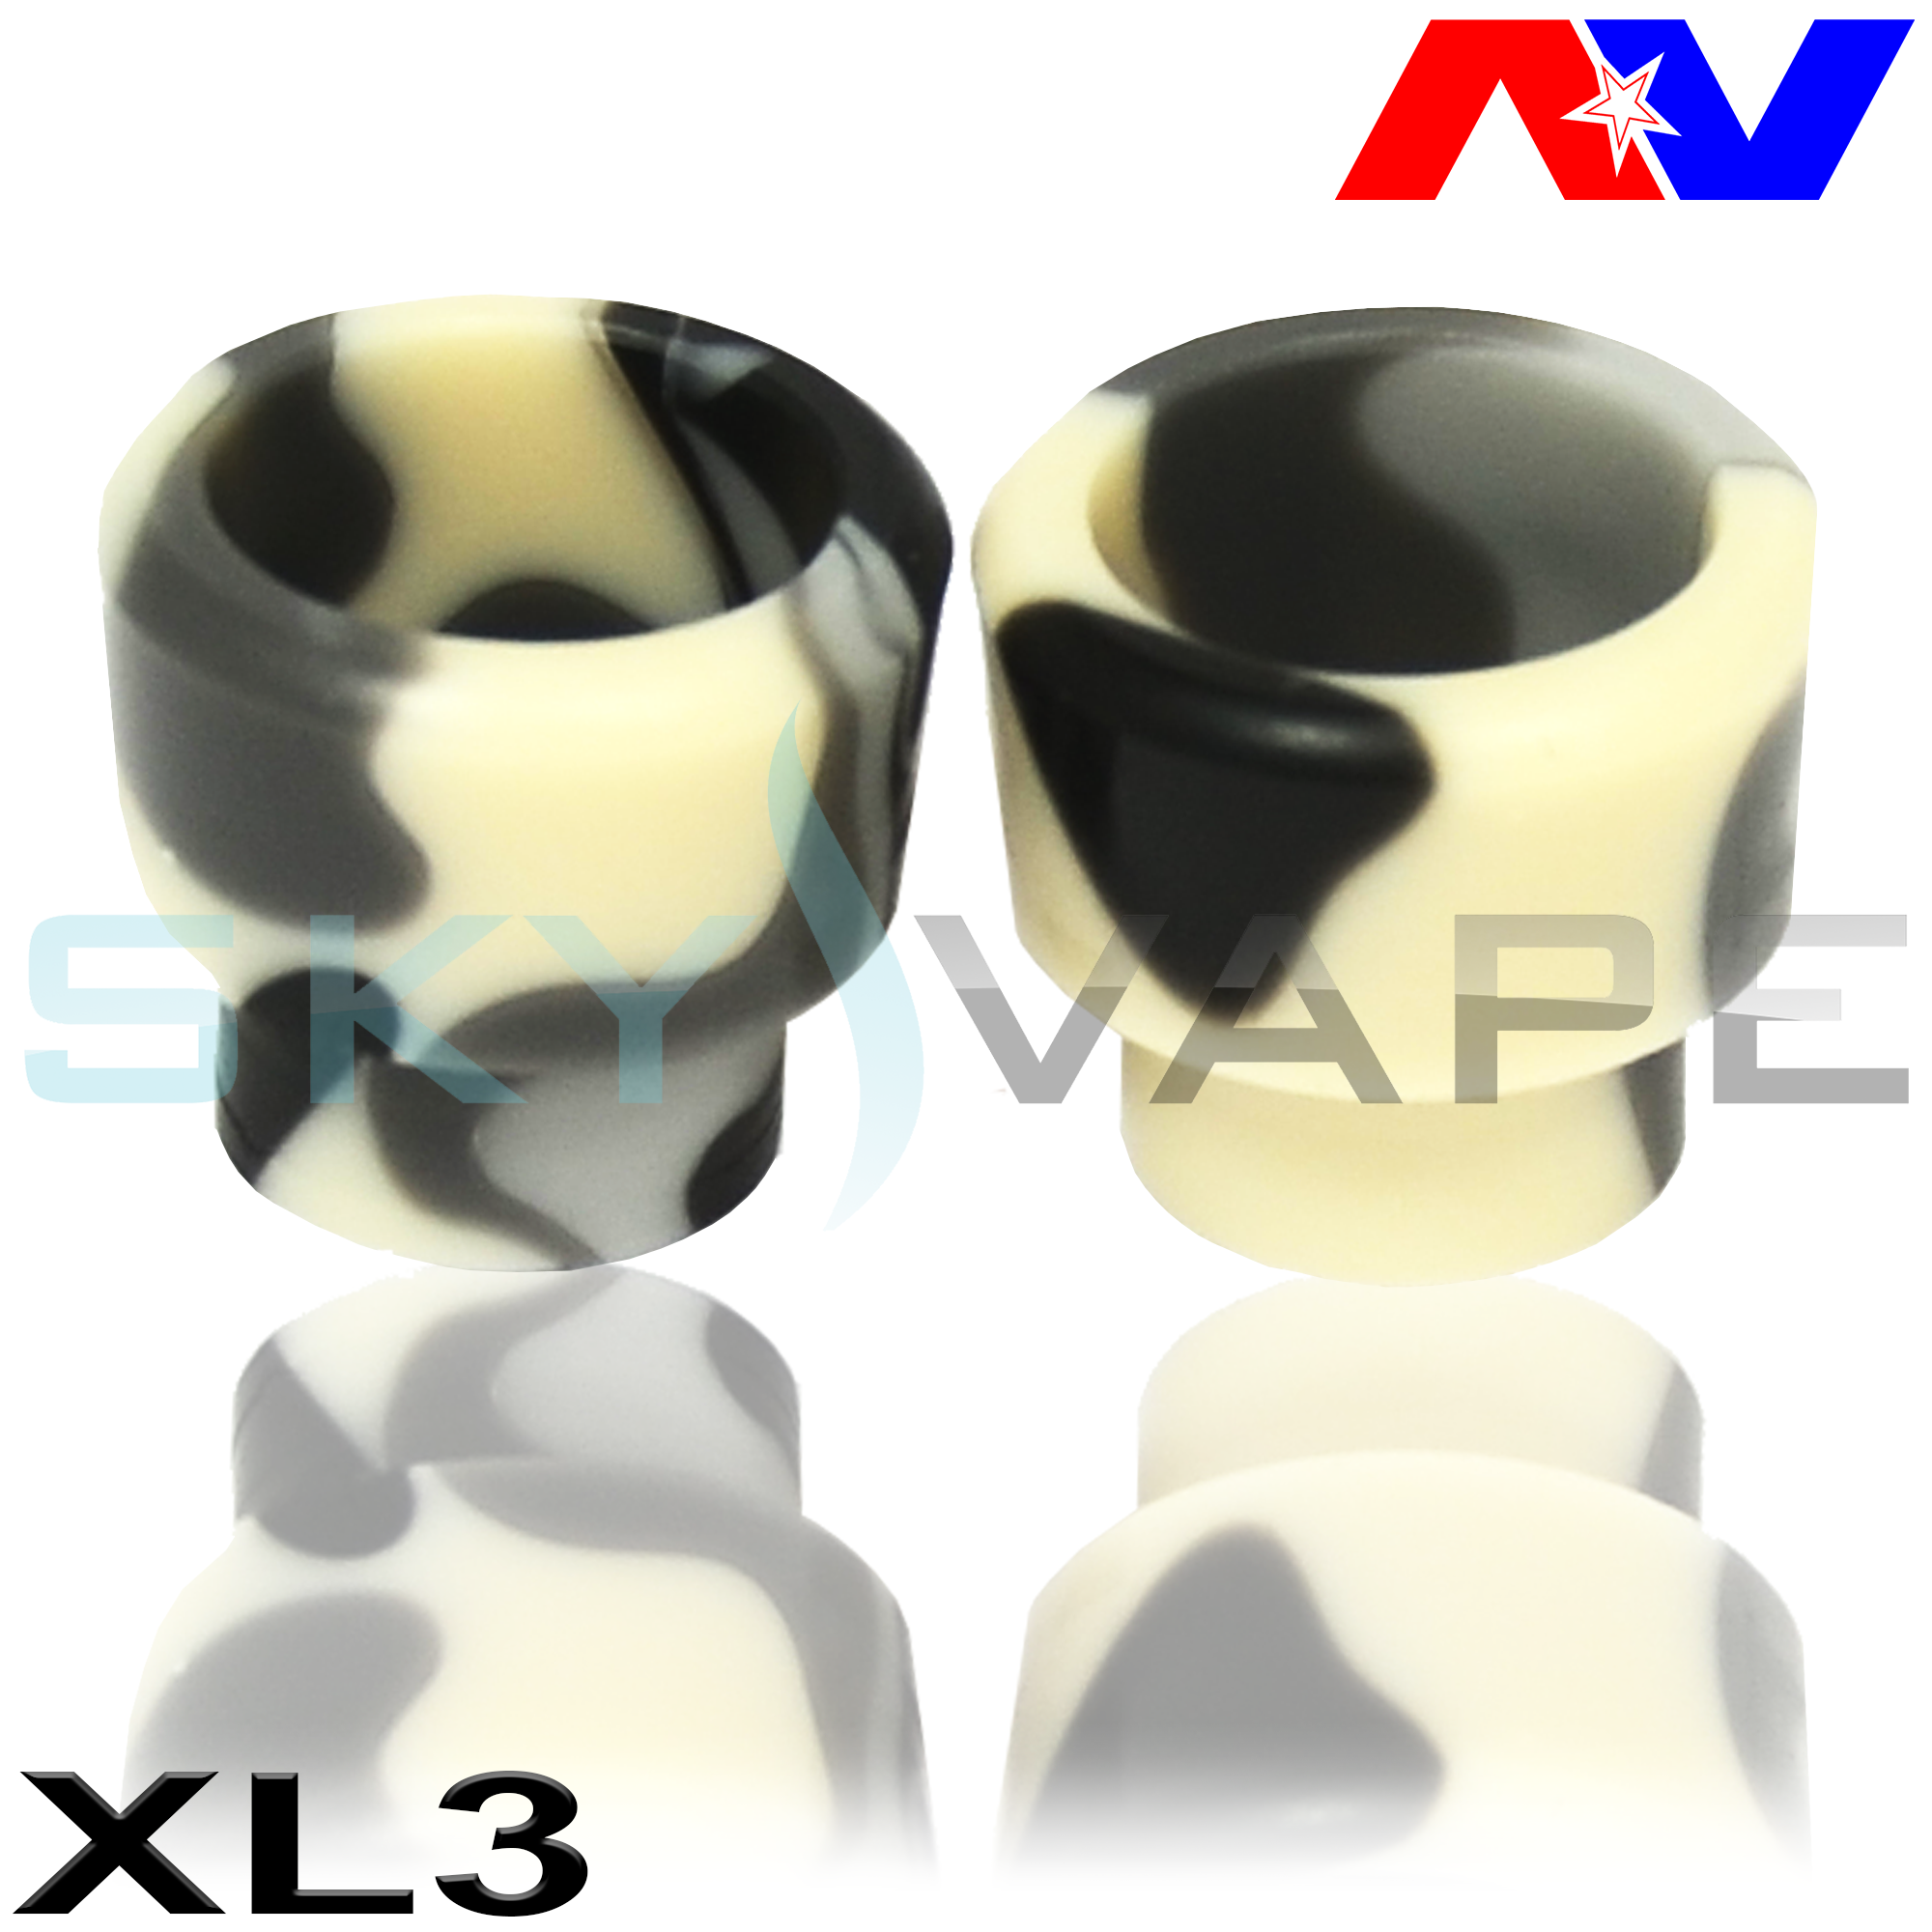 Wide Bore Acrylic Drip Tips By Avid Lyfe (AV Lyfe)